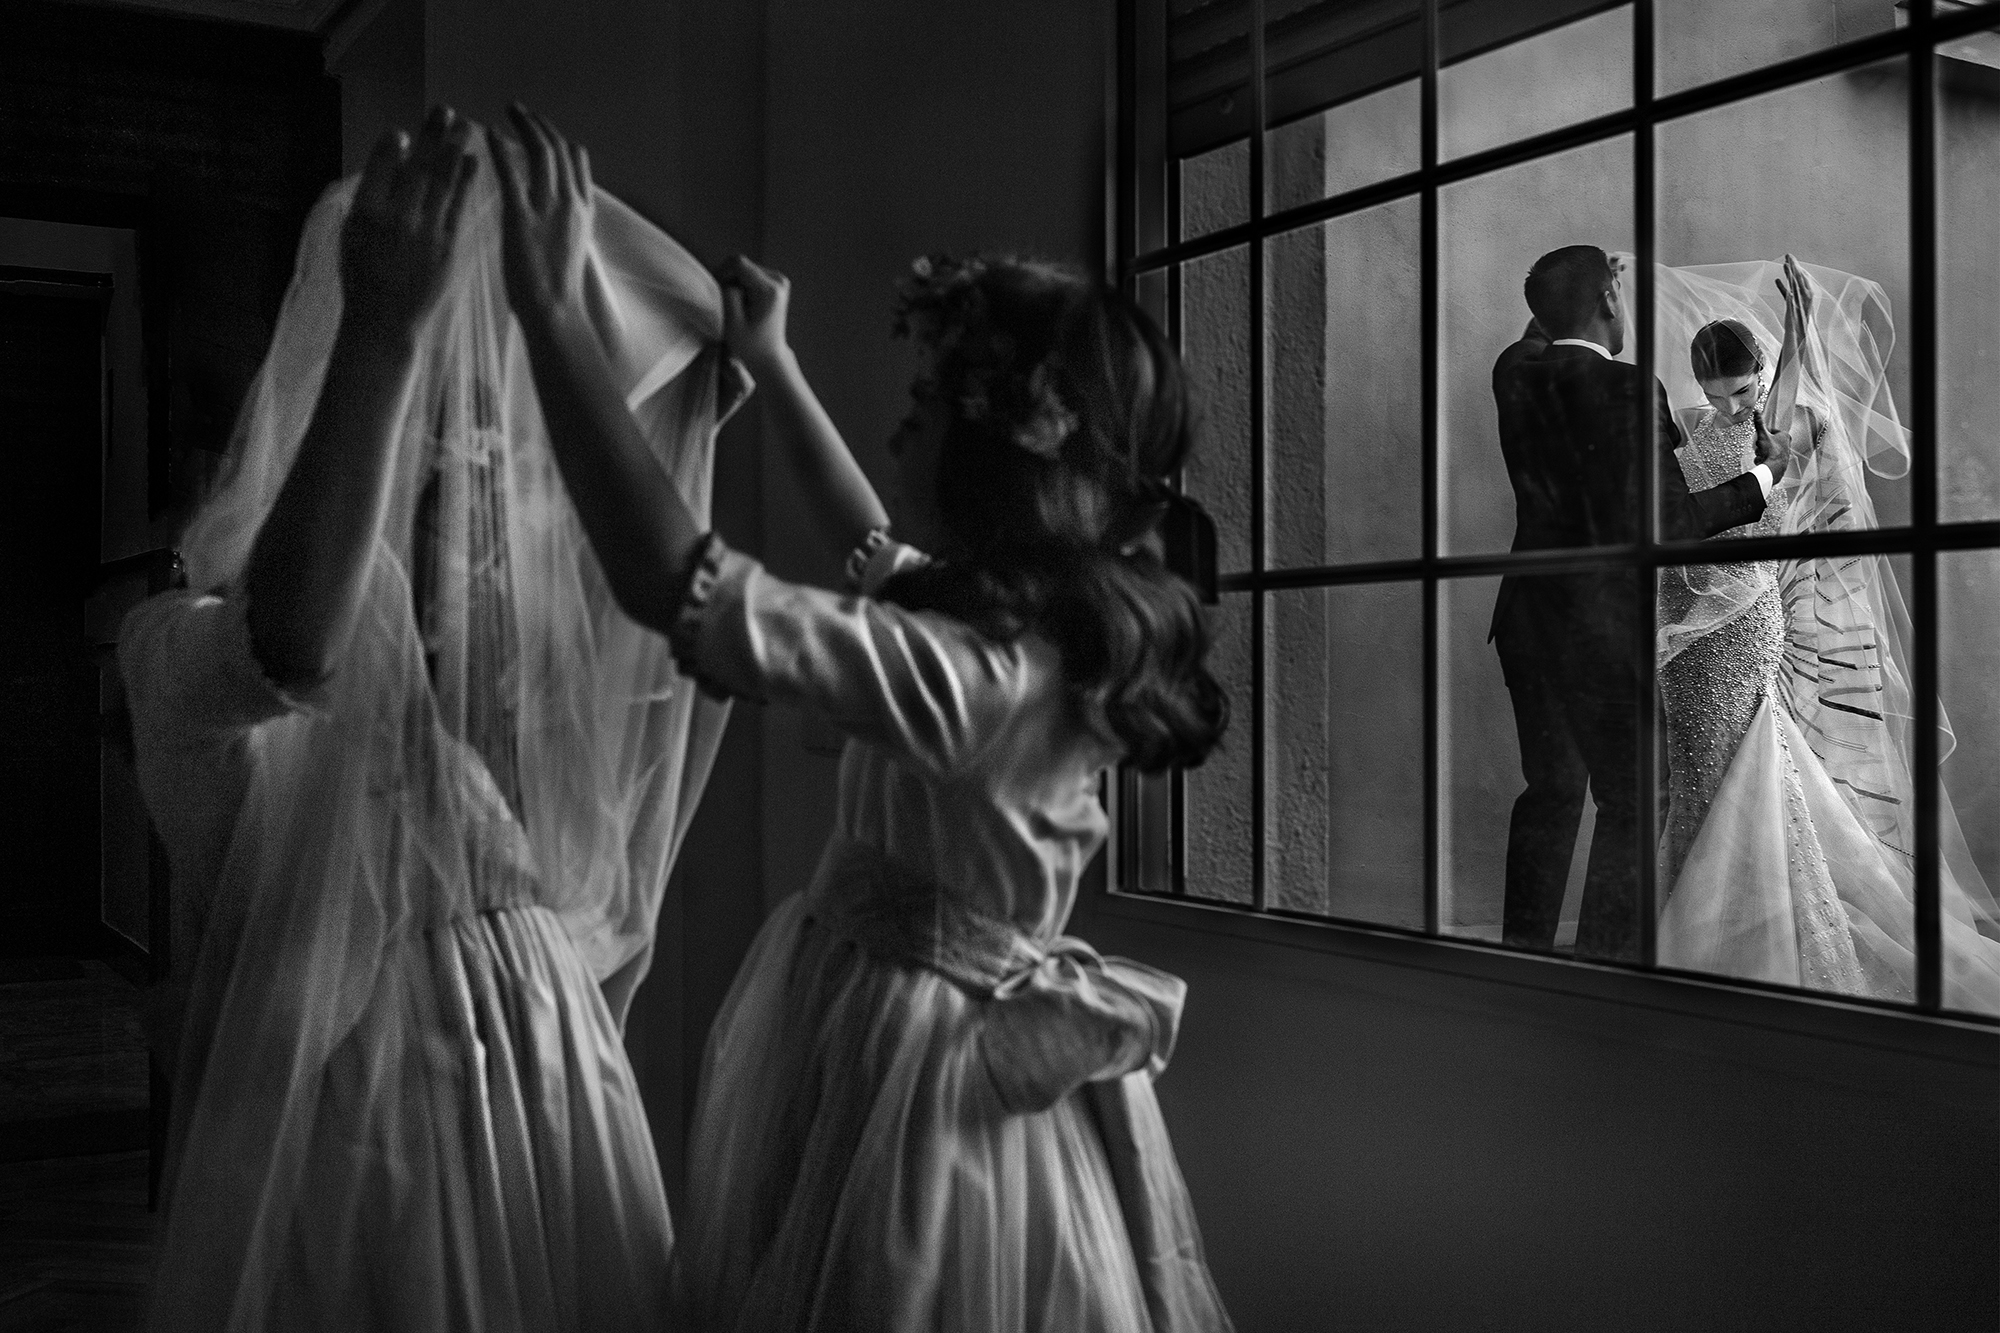 juxtaposition-black-and-white-bride-veil-drawn-worlds-best-wedding-photos-victor-lax-spain-wedding-photographers